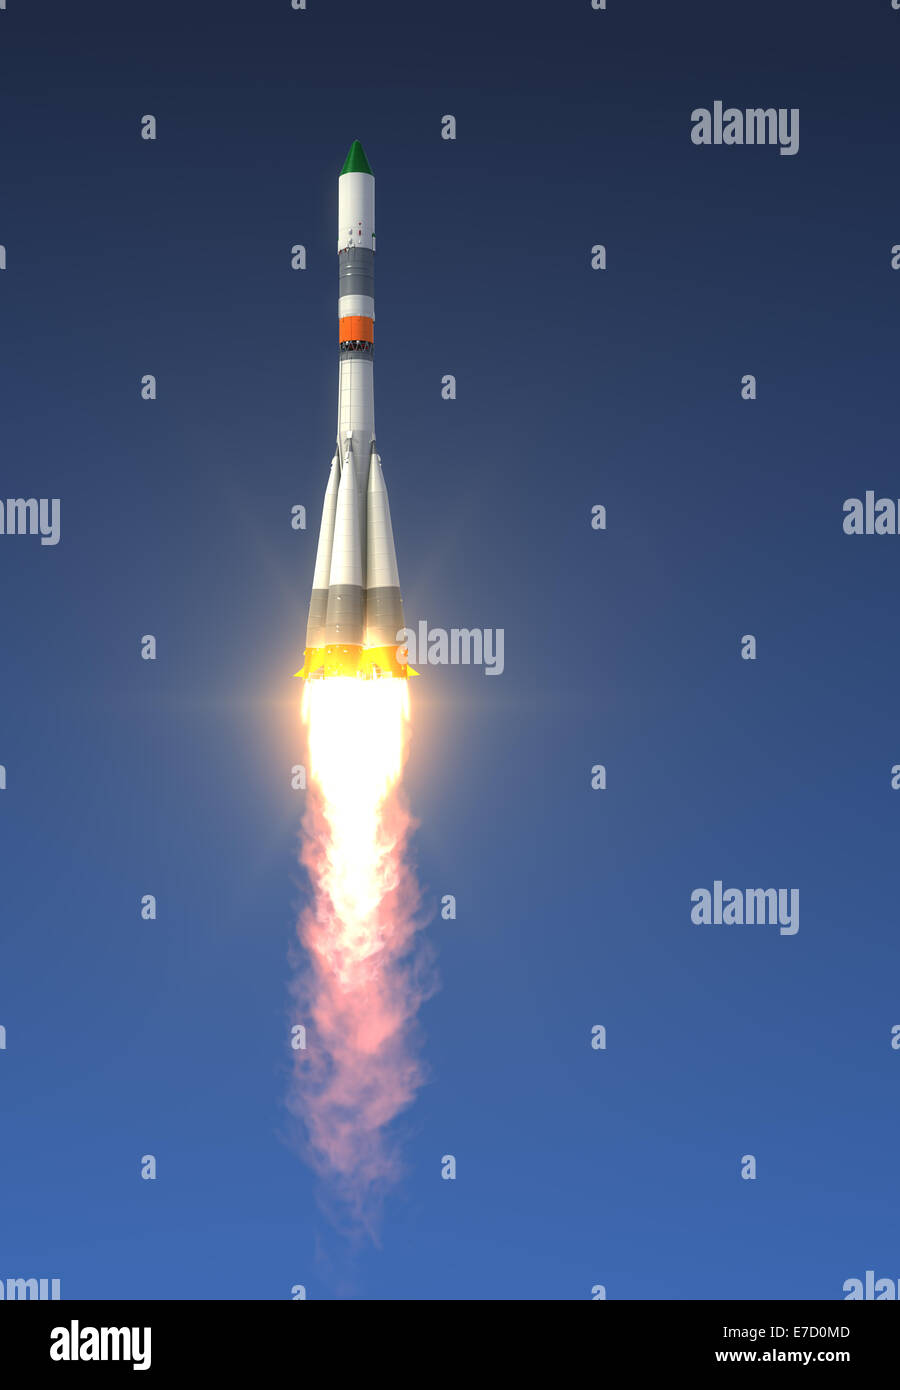 Cargo Rocket Launch On A Sky Background - Stock Image